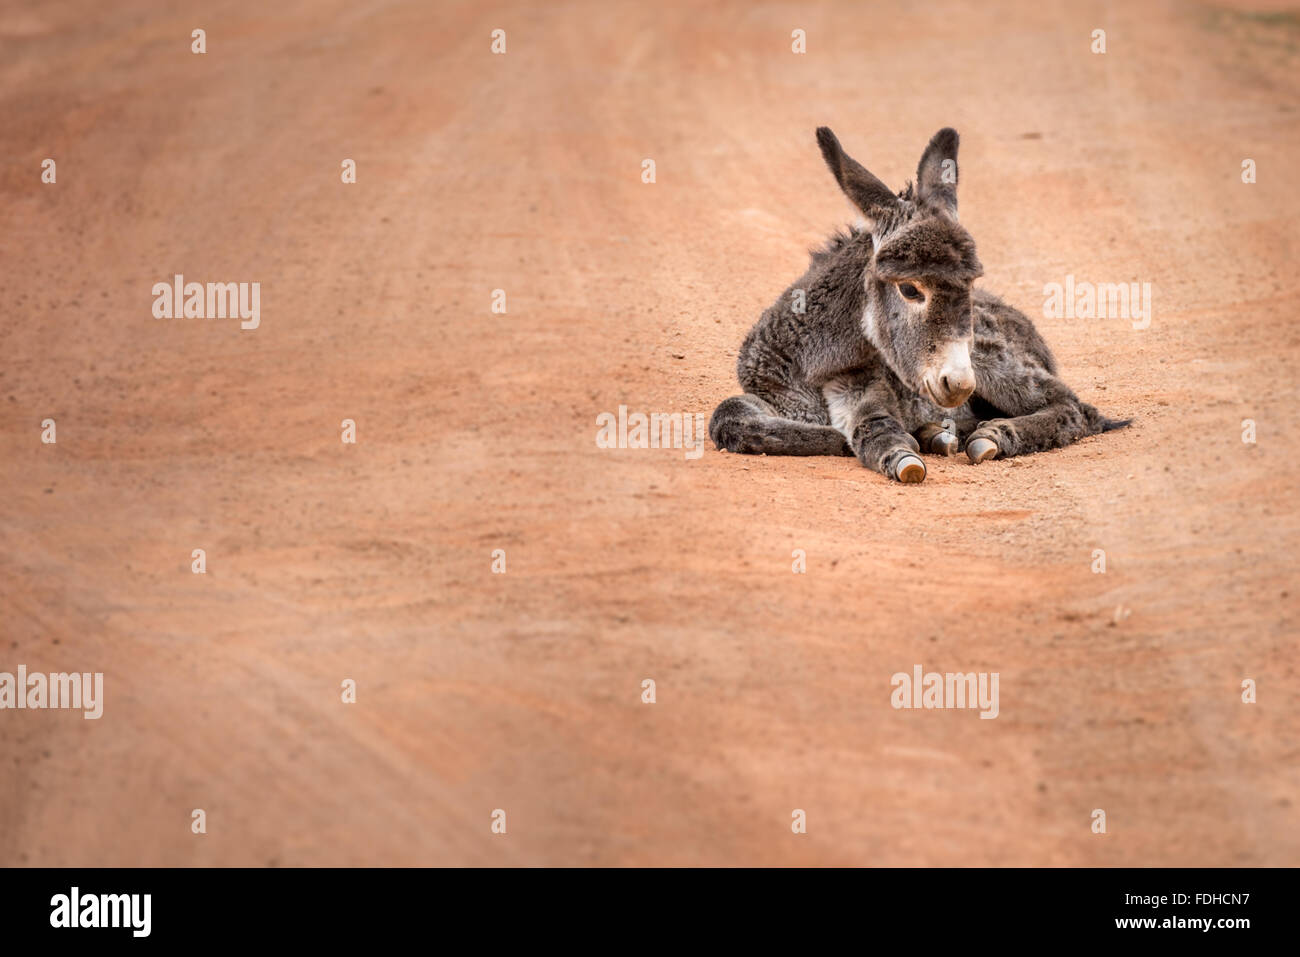 Donkey (Equus africanus asinus) laying in the middle of a dirt road in the Hhohho region of Swaziland, Africa. - Stock Image